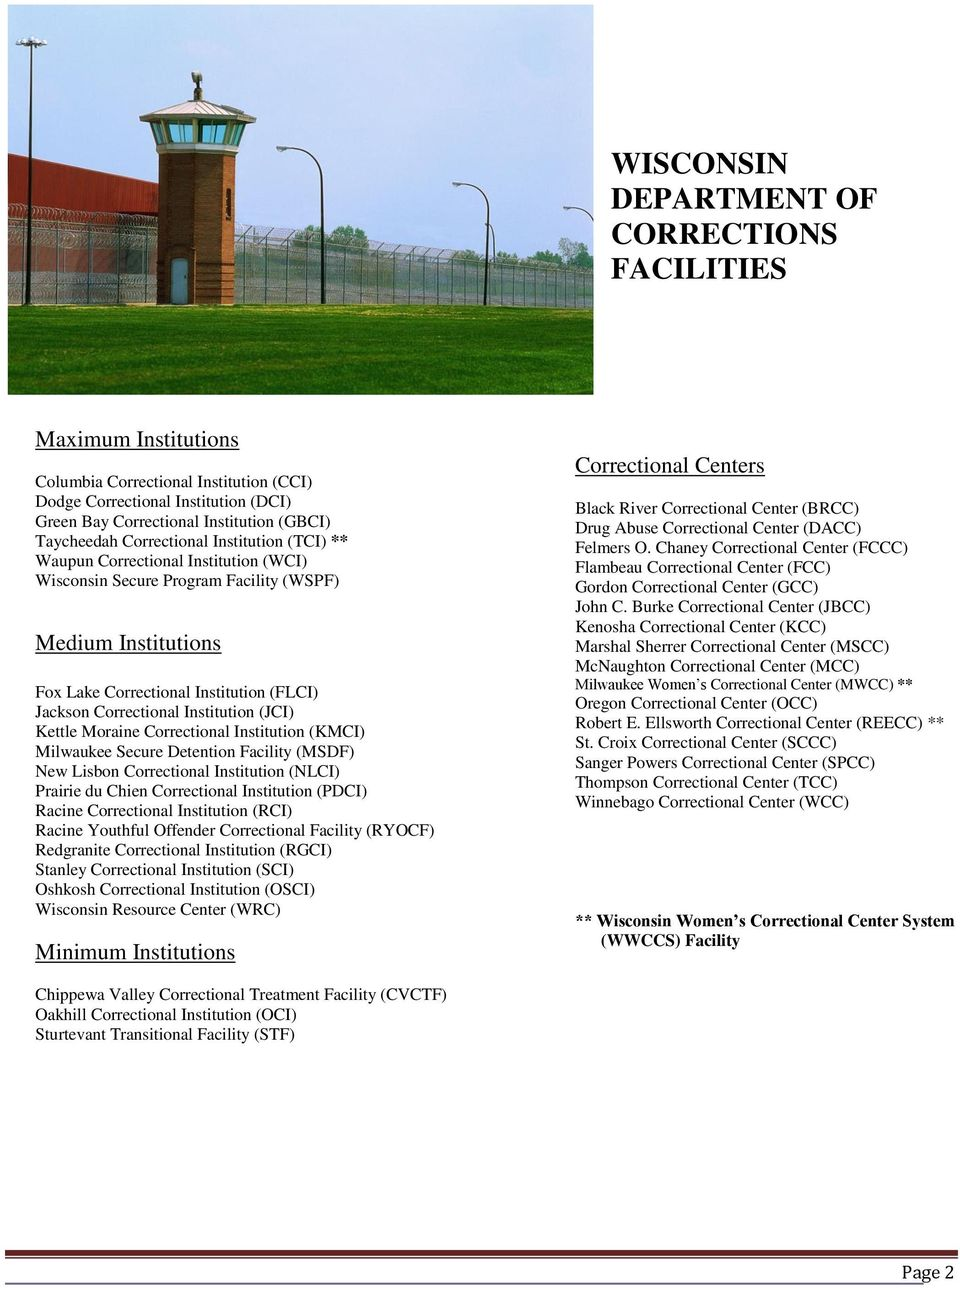 wisconsin department of corrections facilities pdf